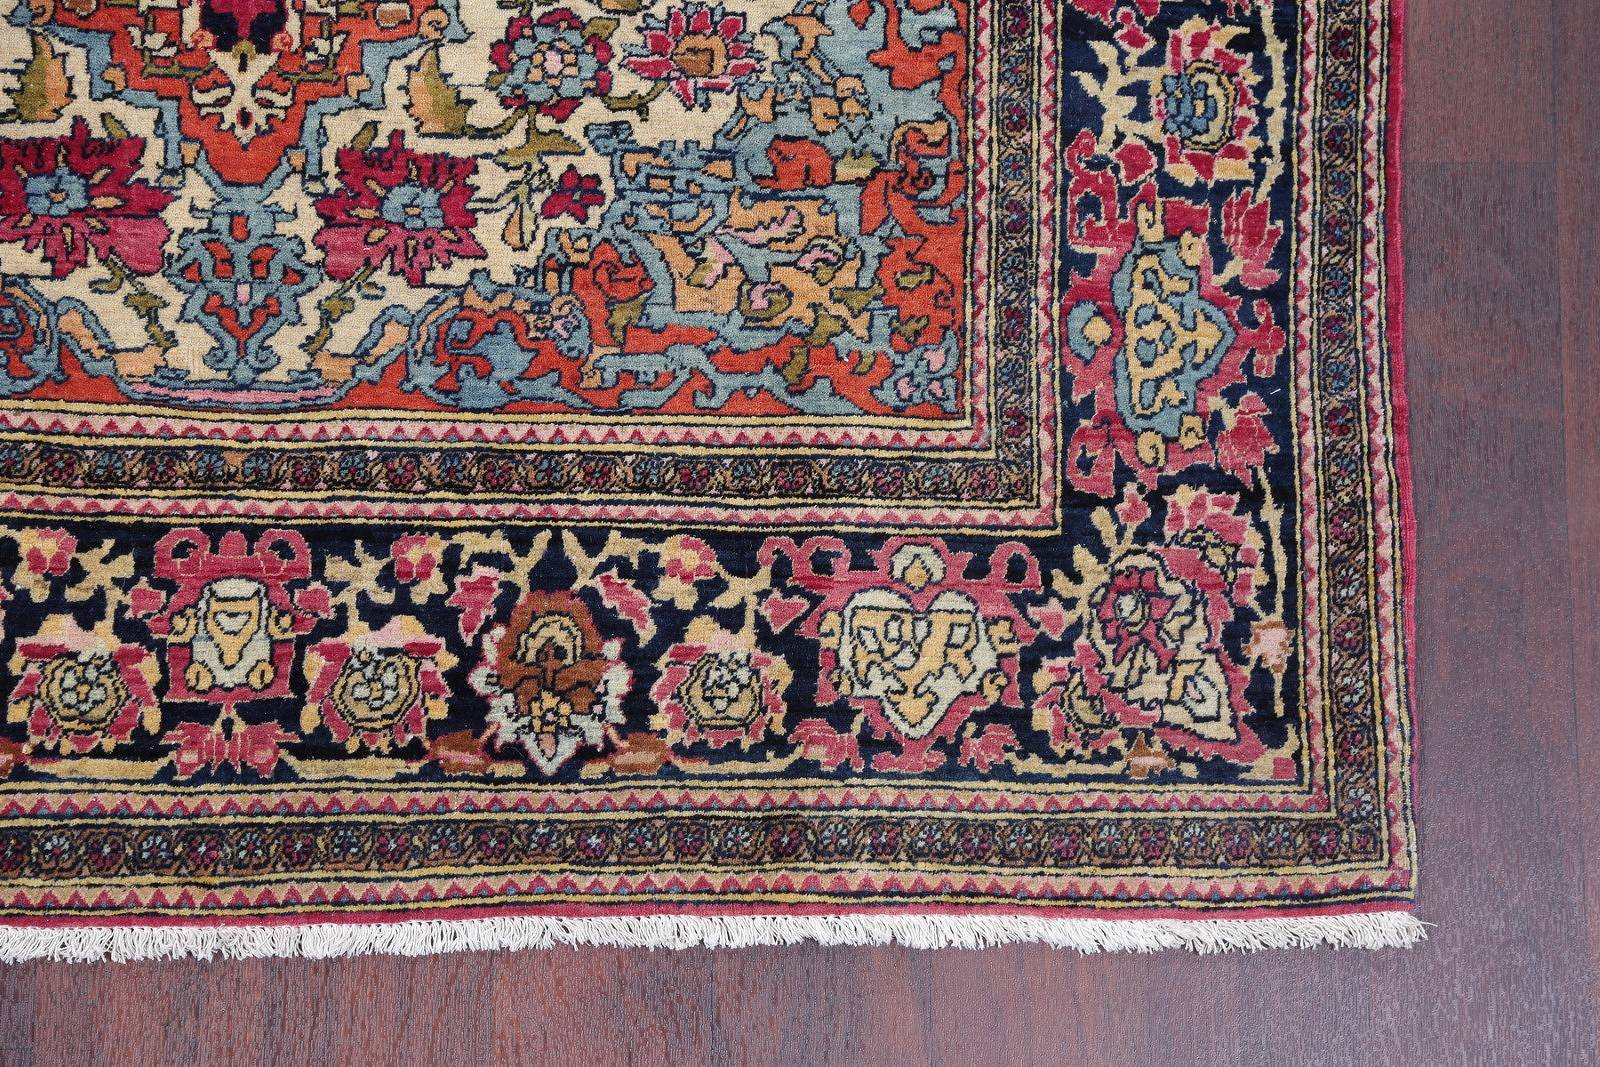 Pre-1900 Antique Vegetable Dye Sarouk Farahan Persian Area Rug 4x7